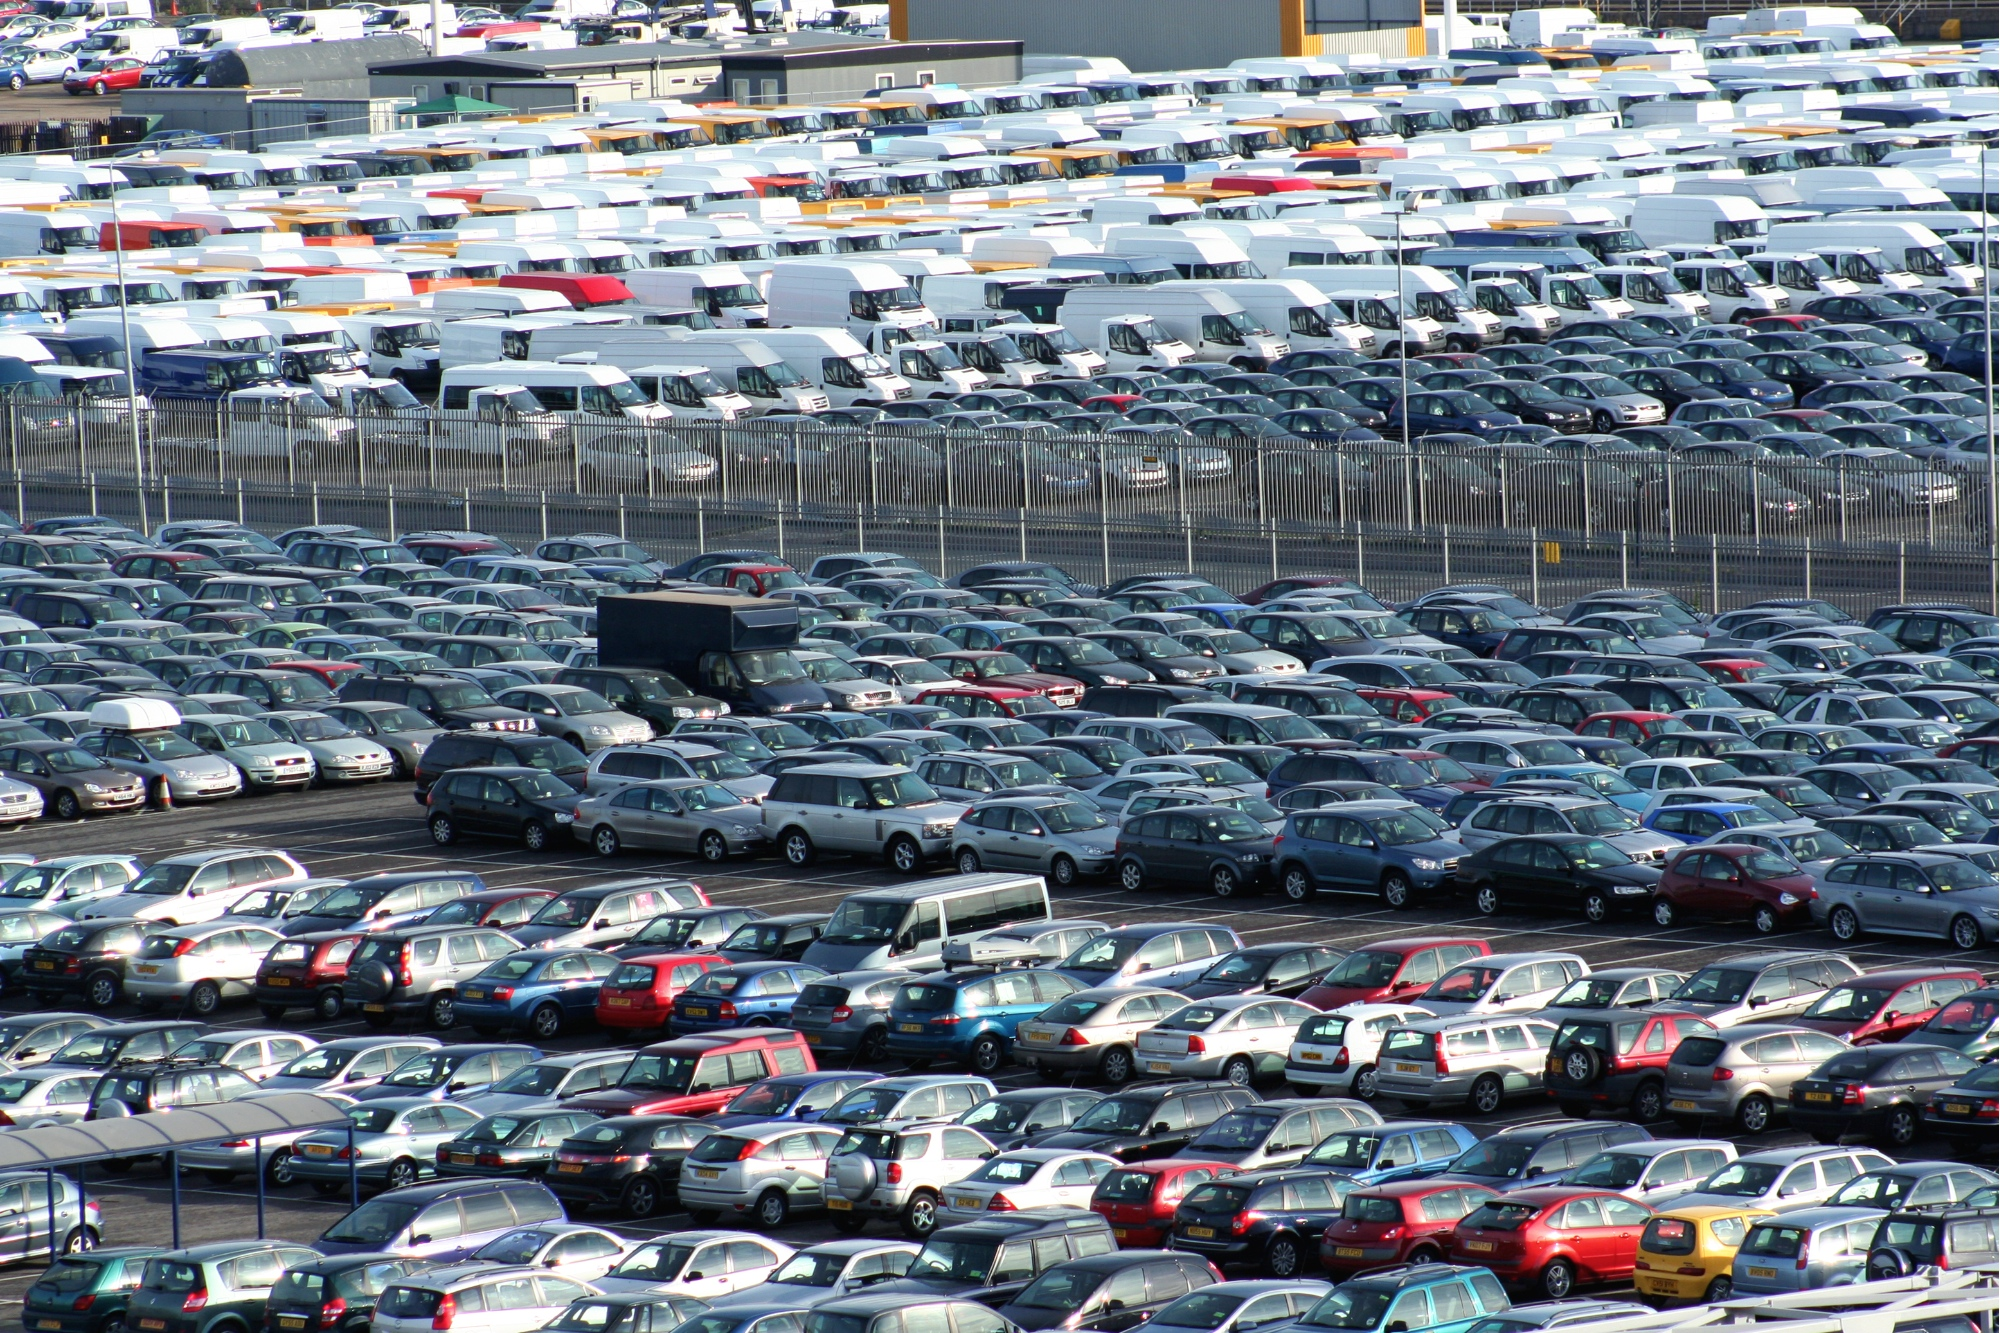 Worldwide Car Sales Could Reach 100 Million by 2018 - autoevolution